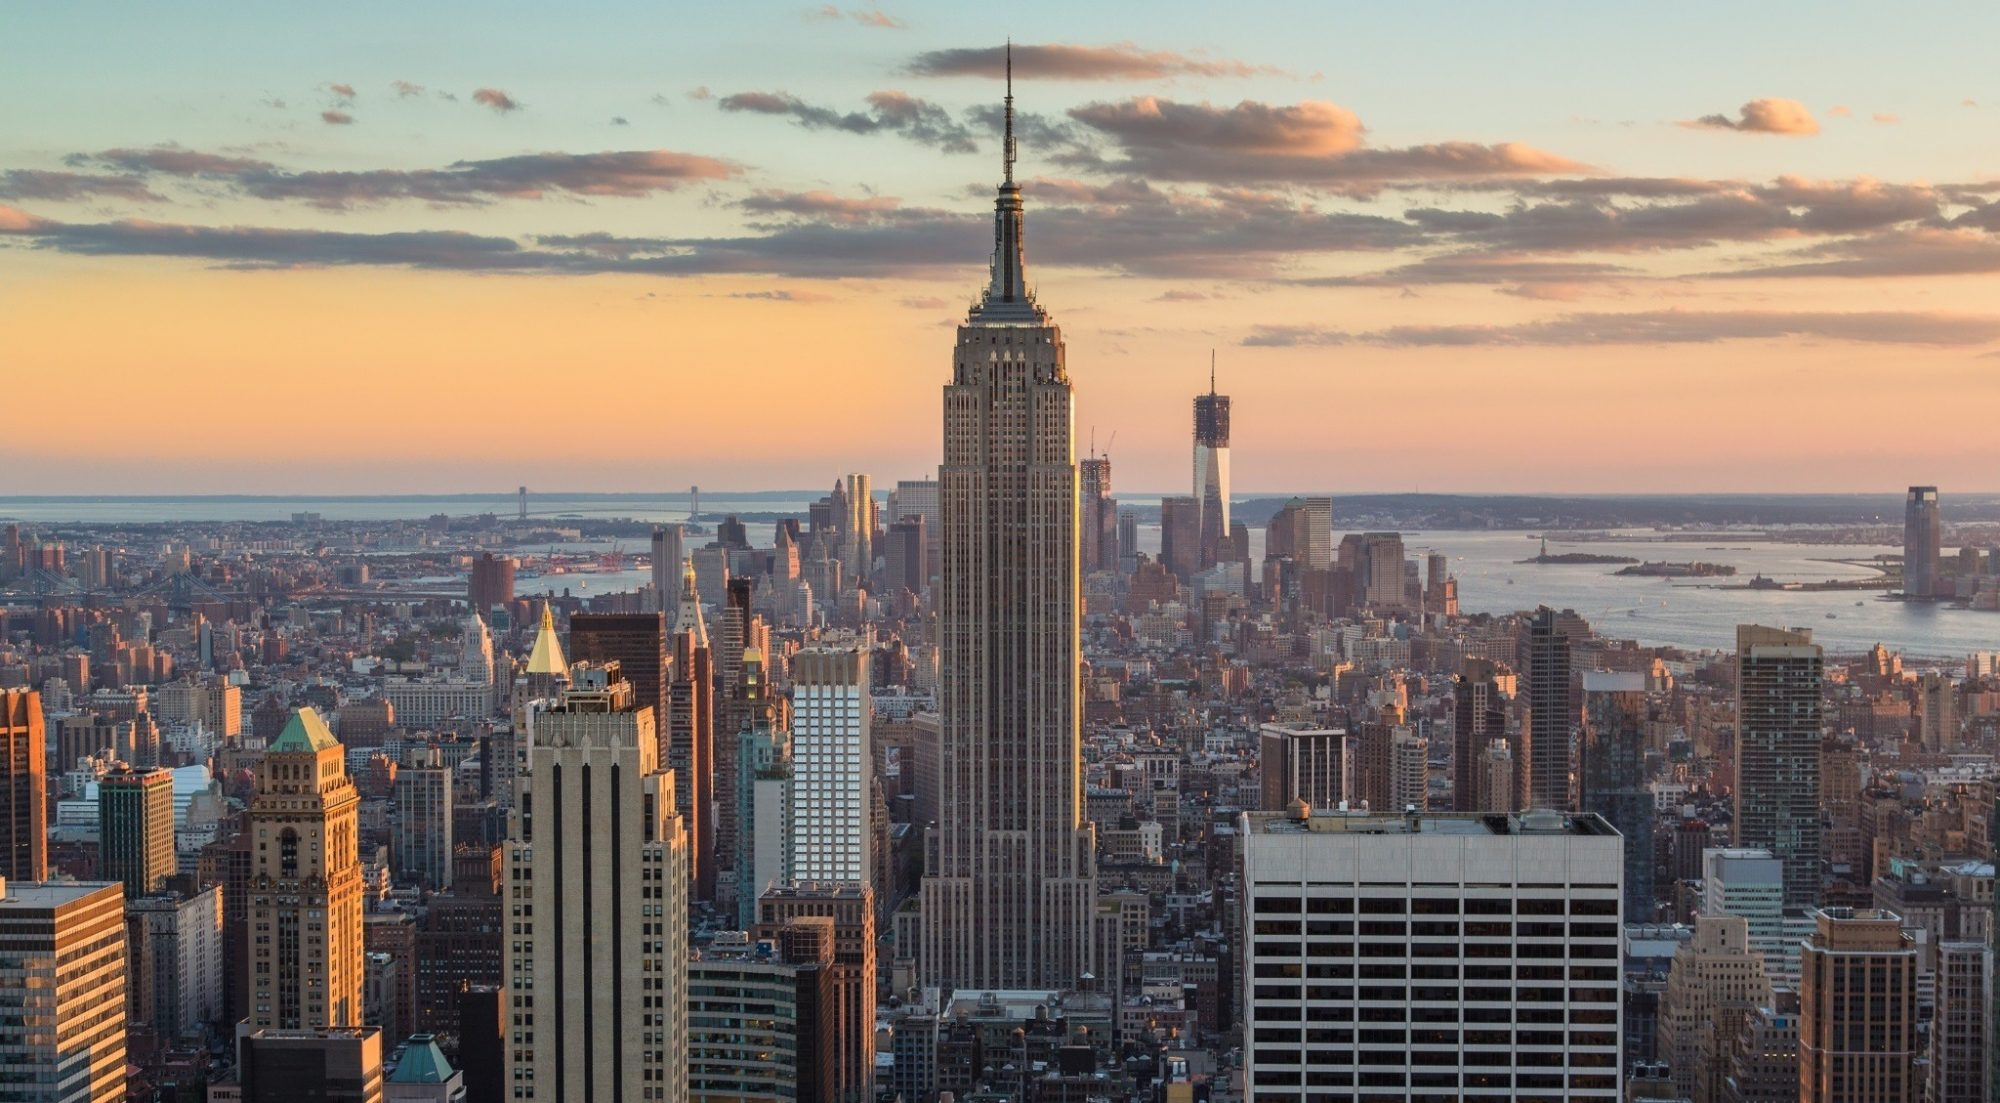 wallpaper of Empire State Building